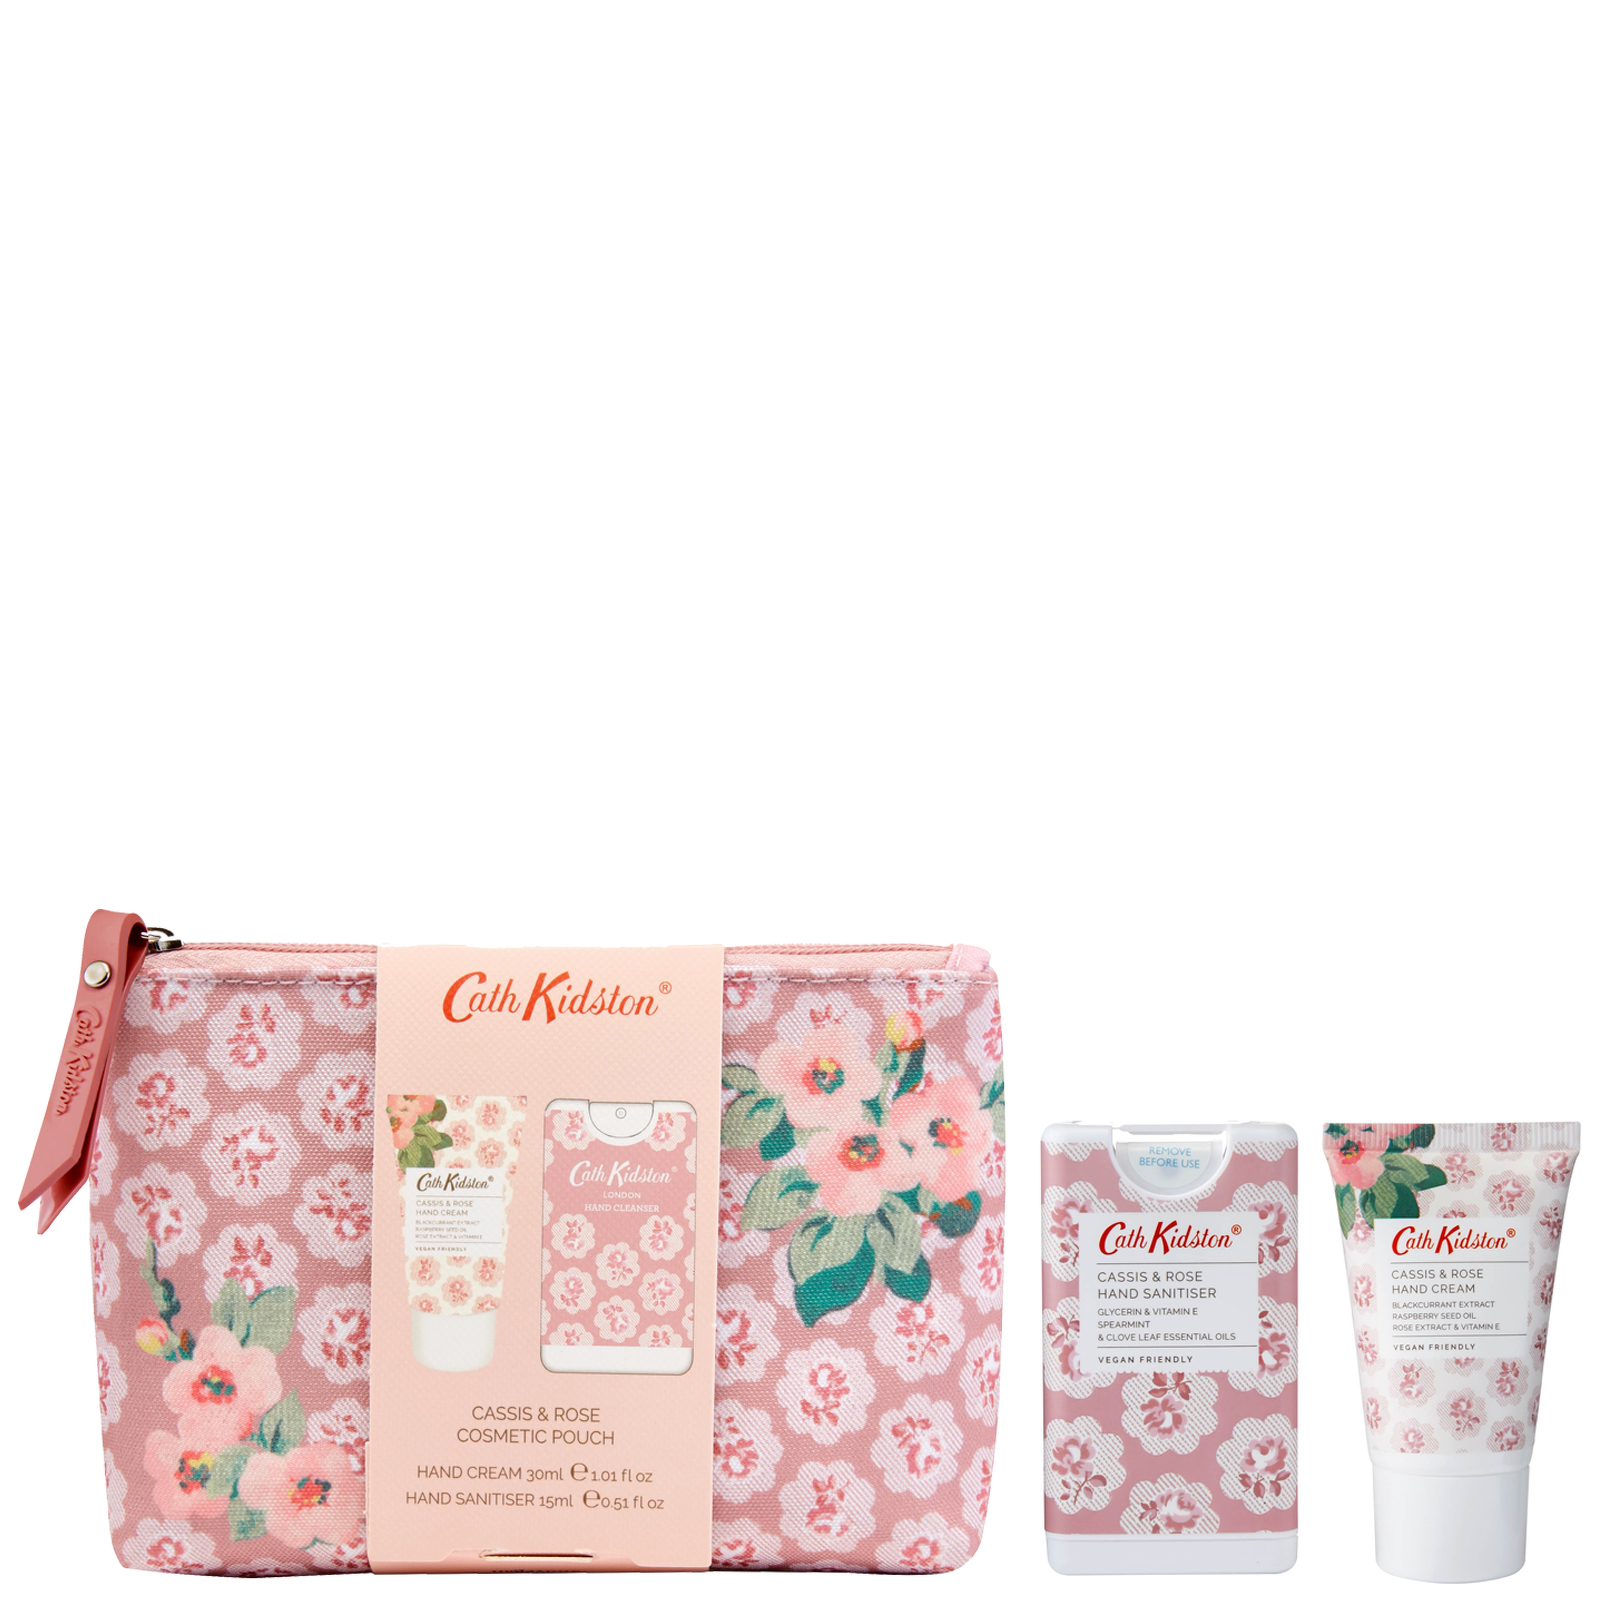 Cath Kidston Gifts & Sets Cath Kidston Cassis & Rose Cosmetic Pouch